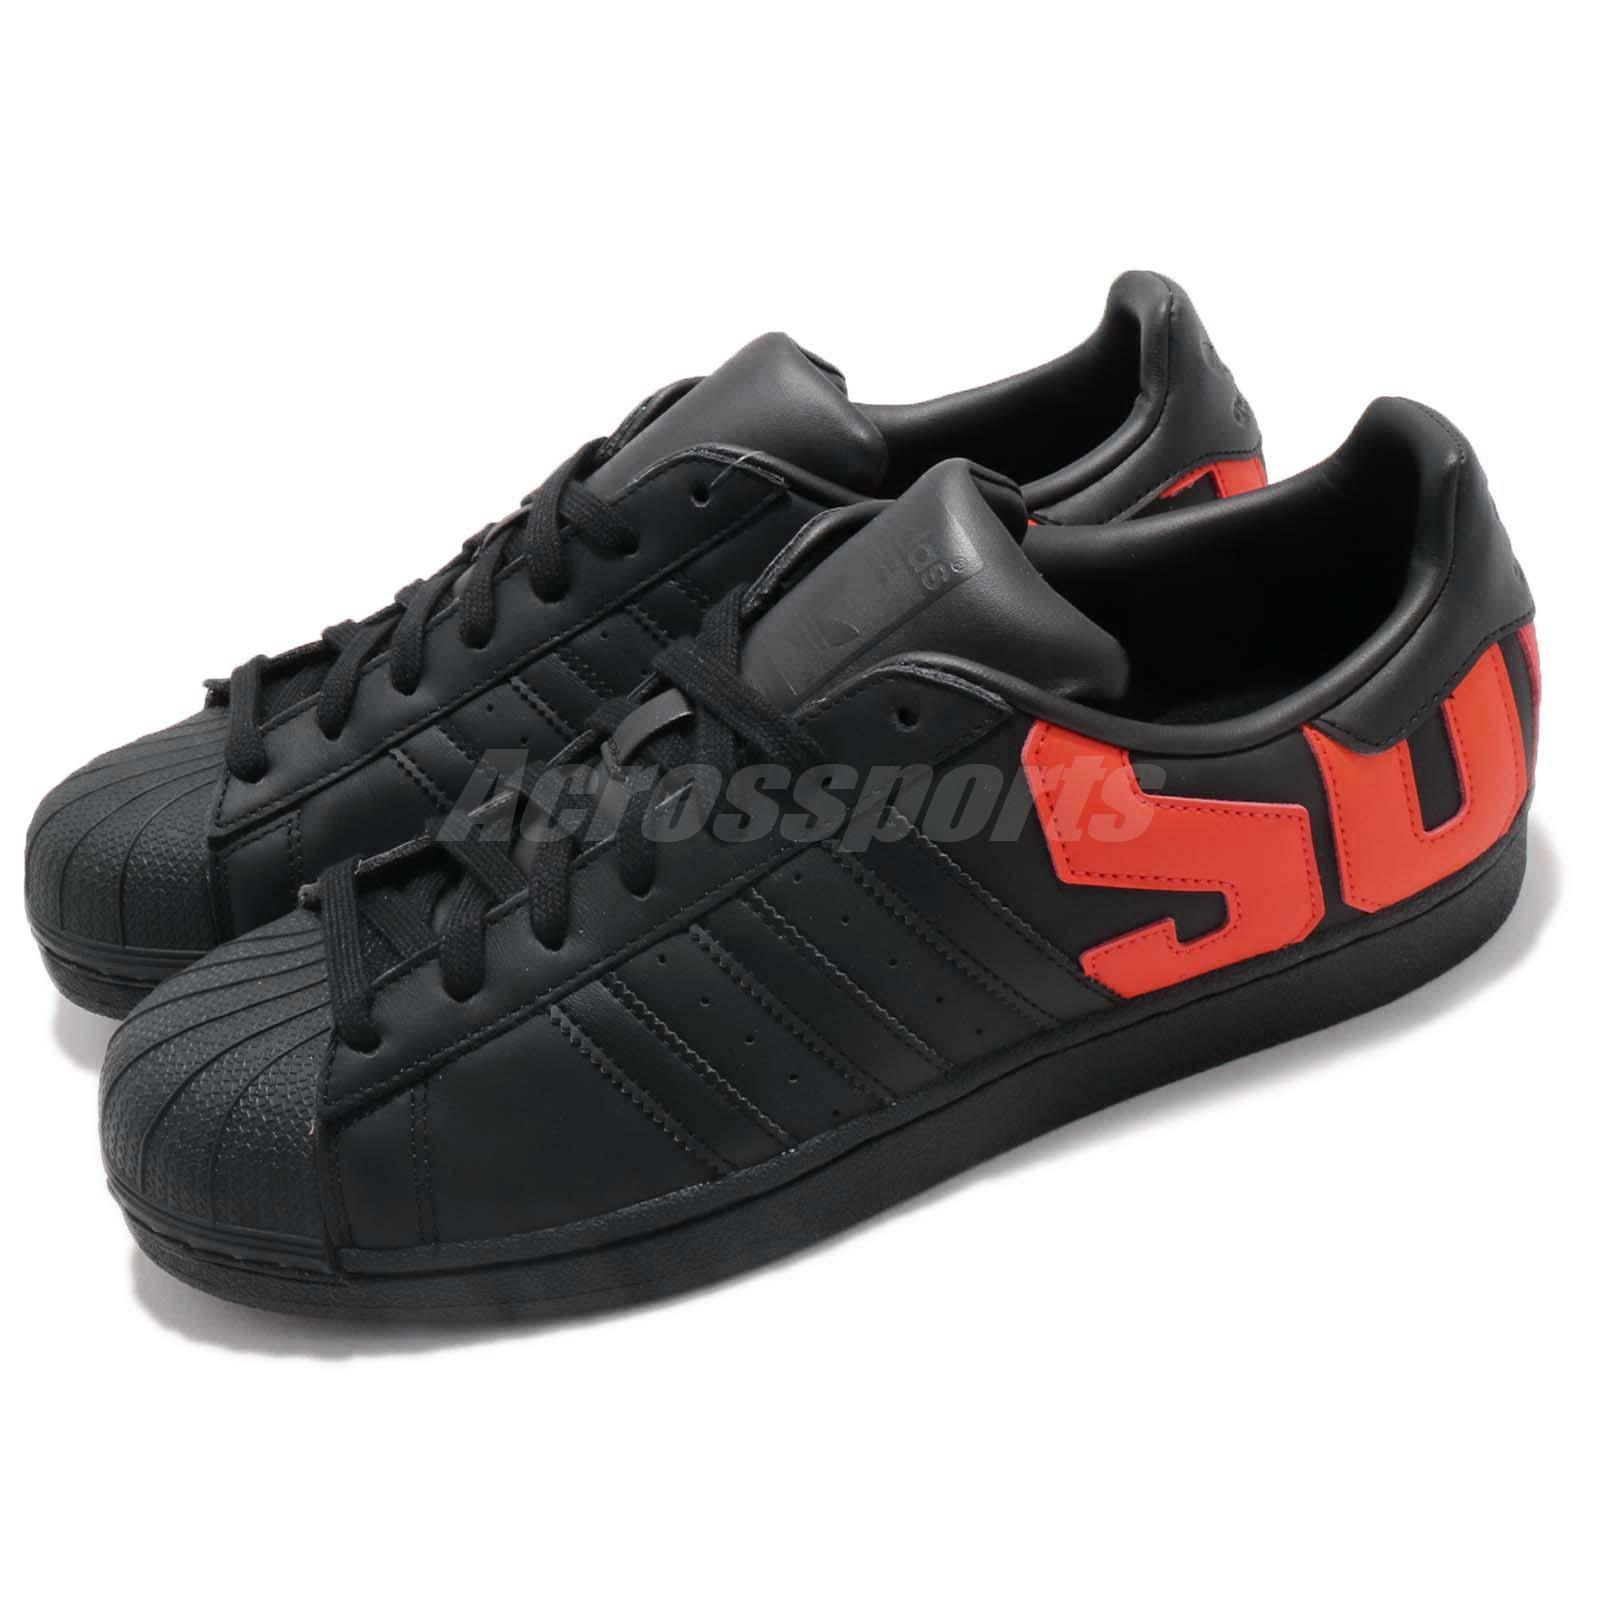 Details About Adidas Originals Superstar Big Logo Black Orange Men Casual Shoes Sneaker B37981